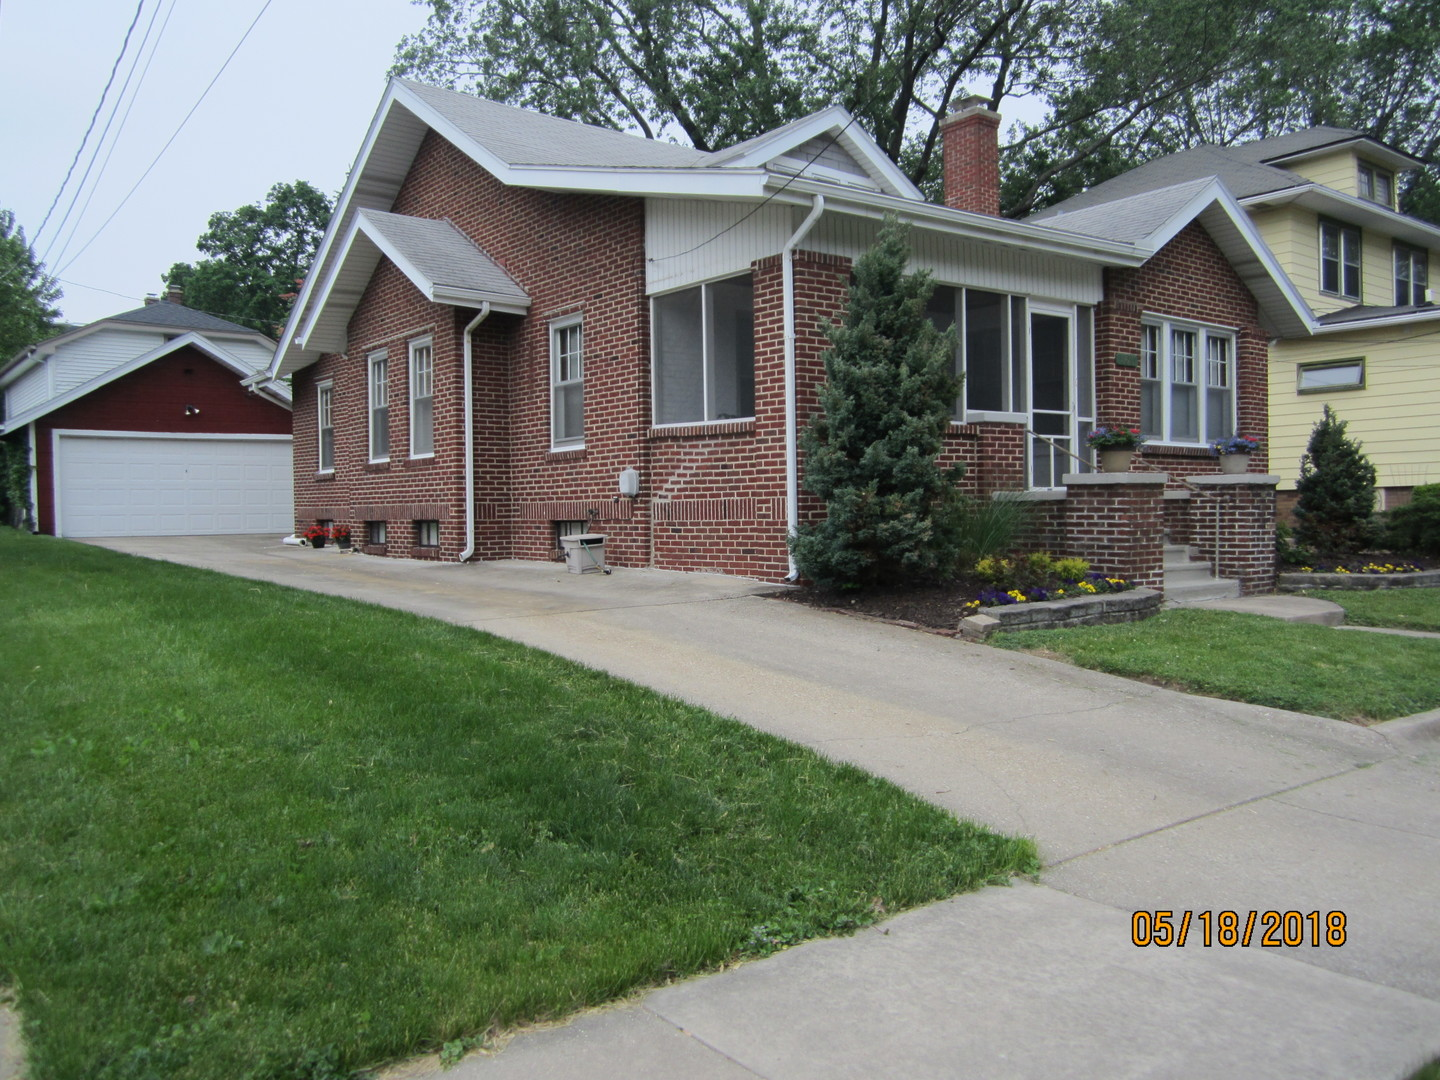 808 West Clark Street, Champaign in Champaign County, IL 61820 Home for Sale